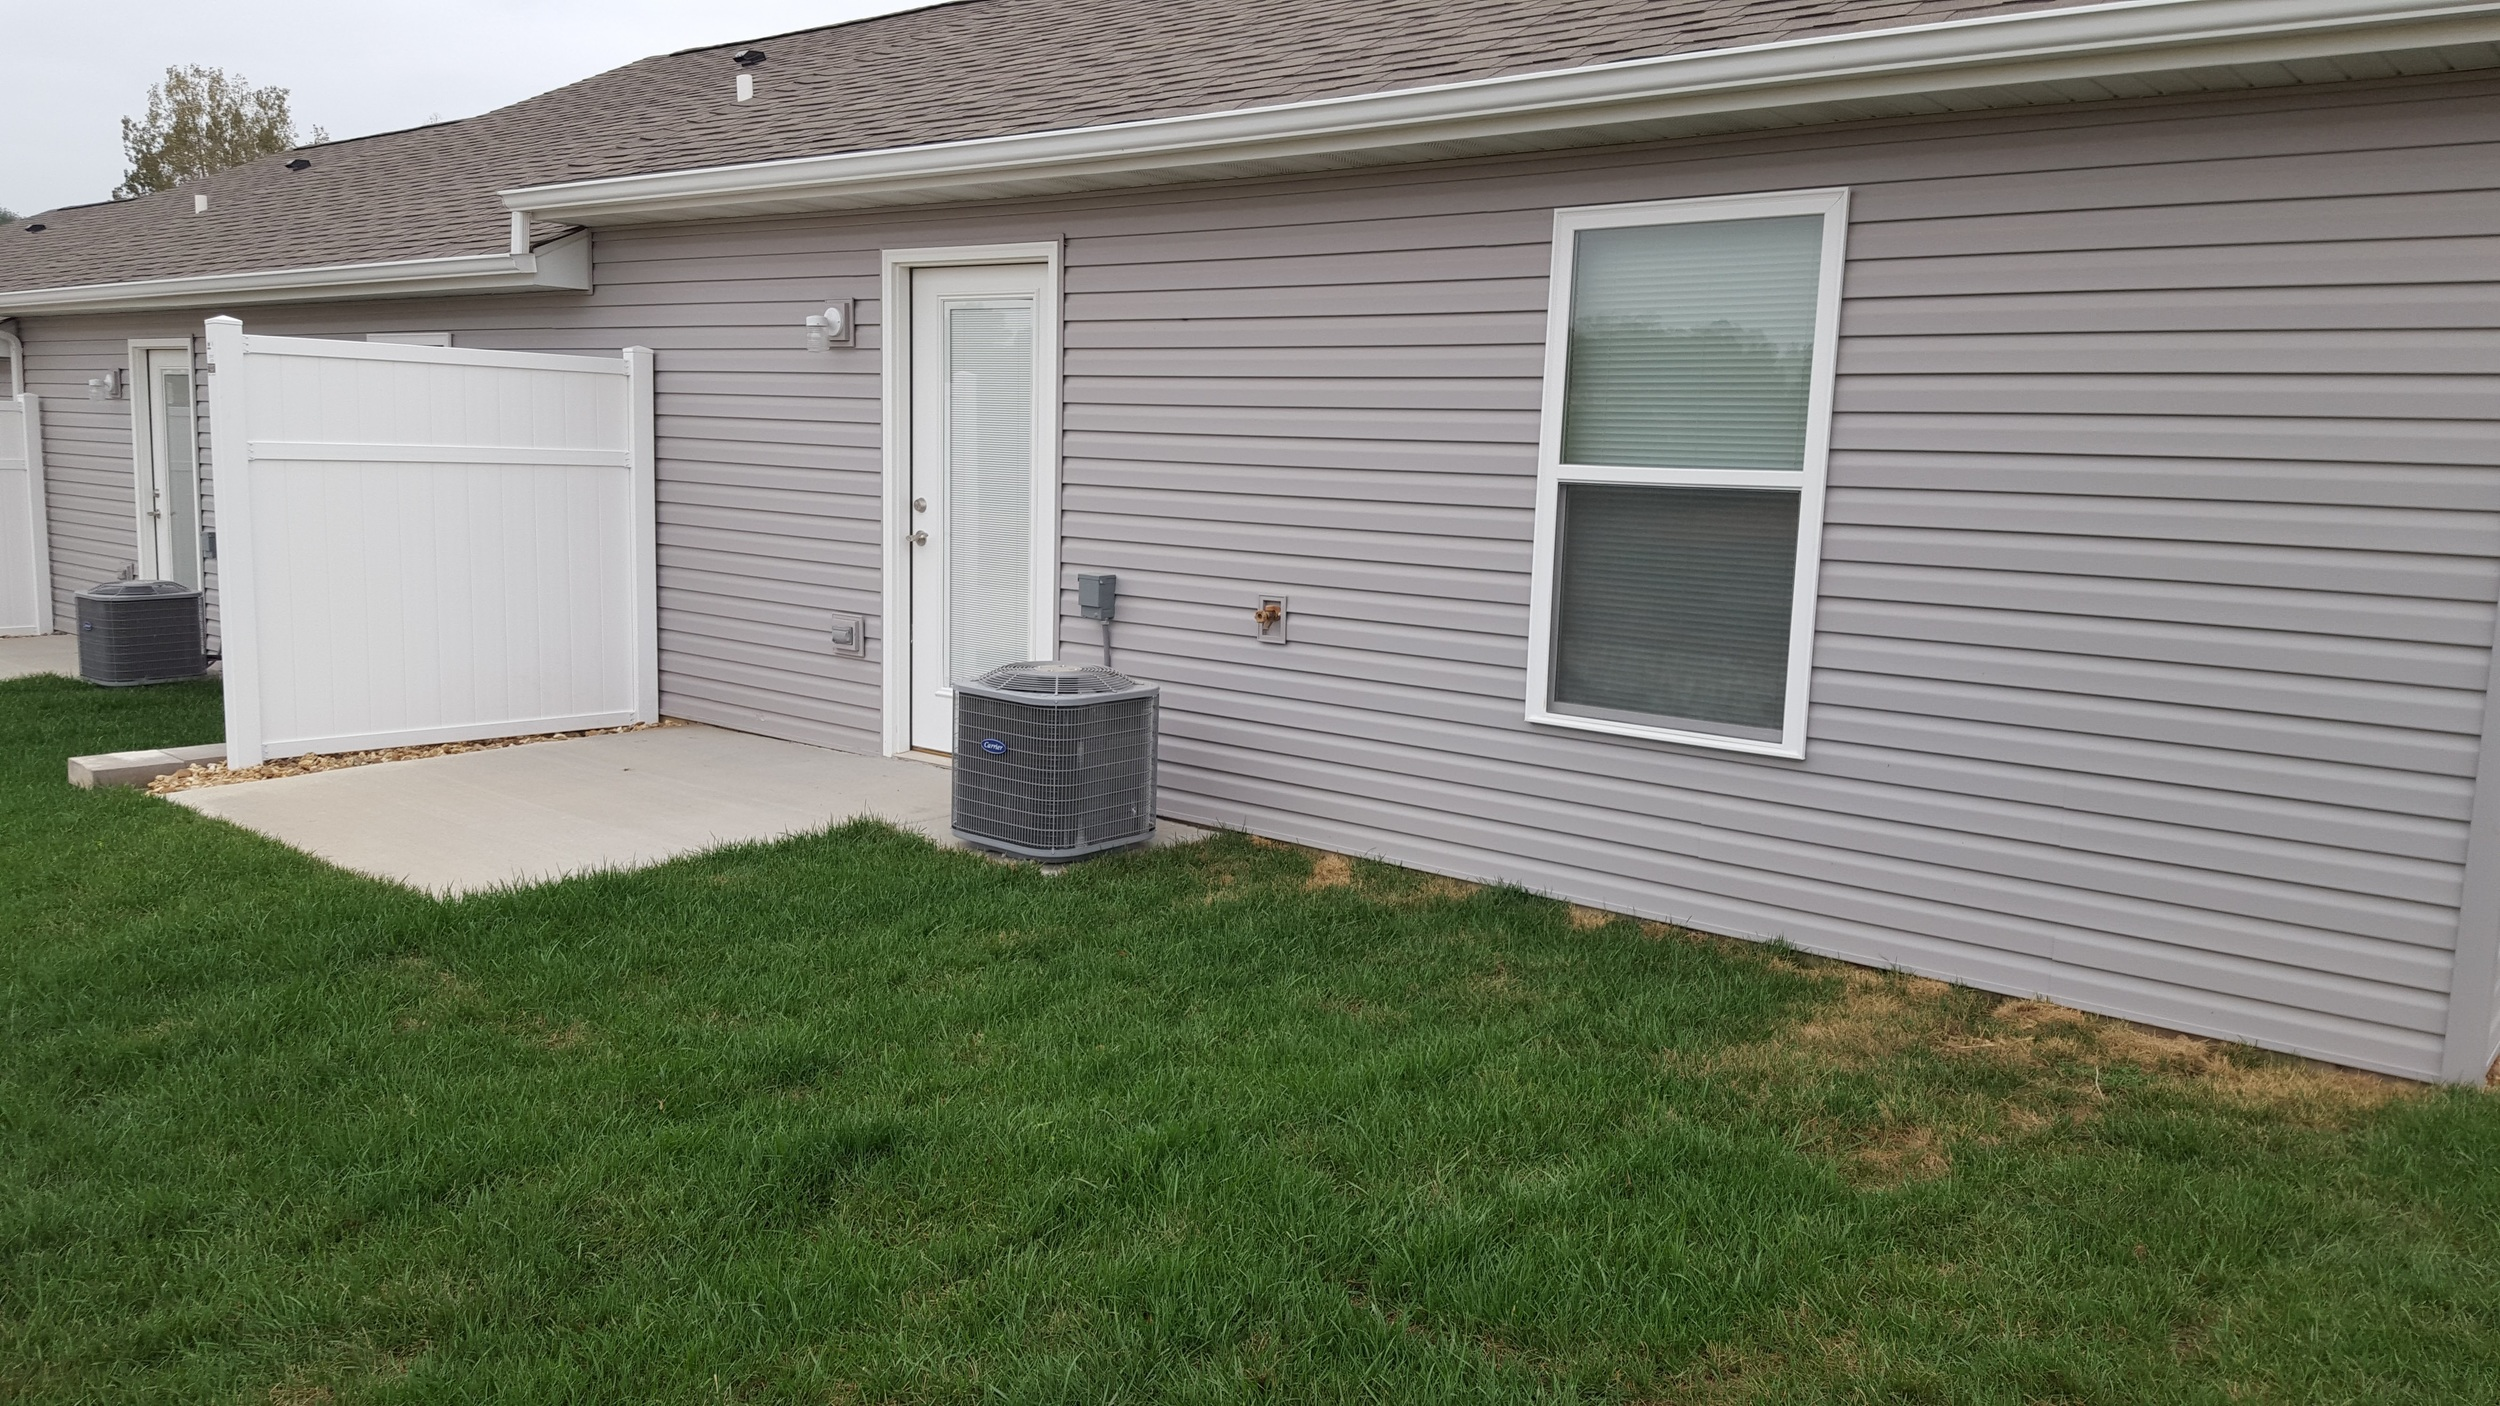 2 bedroom back patio and yard